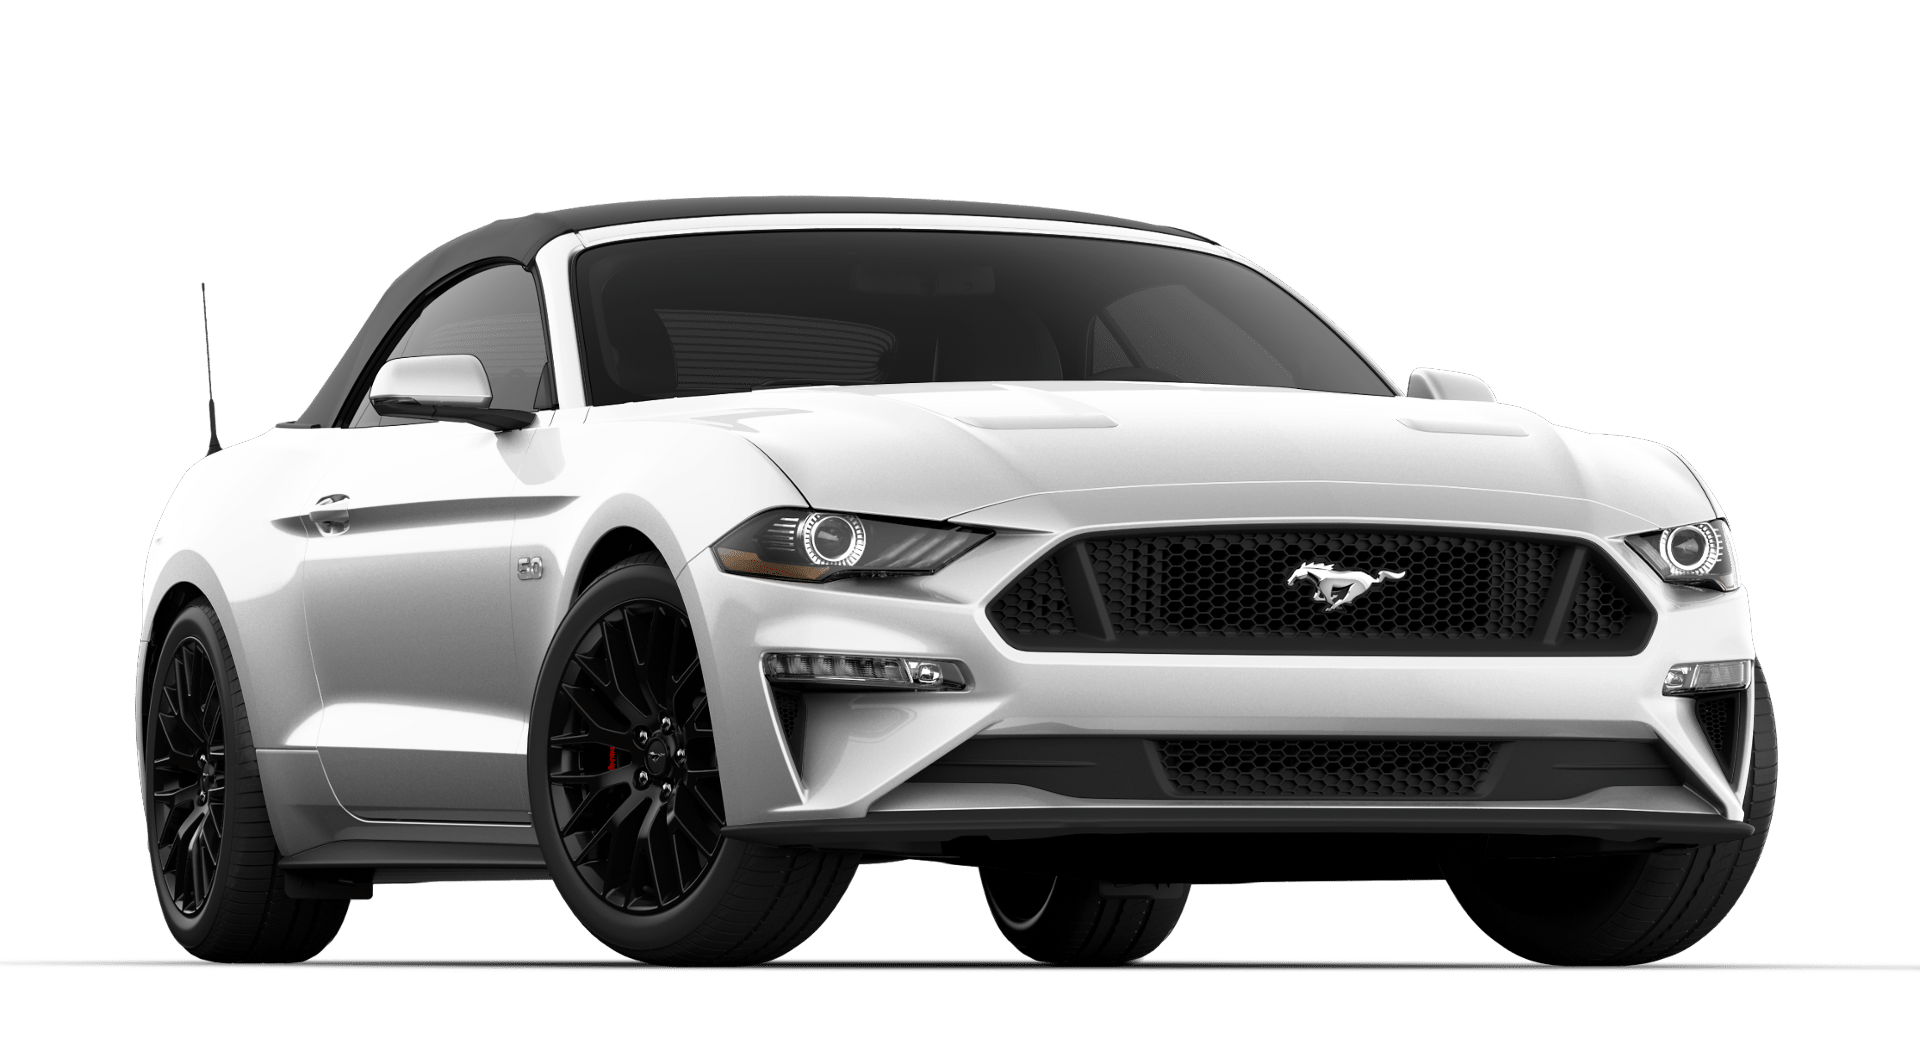 V8 GT Premium 401A Convertible$55,700 - + Oxford White+ 10-Speed Automatic Transmission+ GT Performance Package 1+ Quad Tip Active Exhaust+ Convertible+ B&o premium sound upgrade